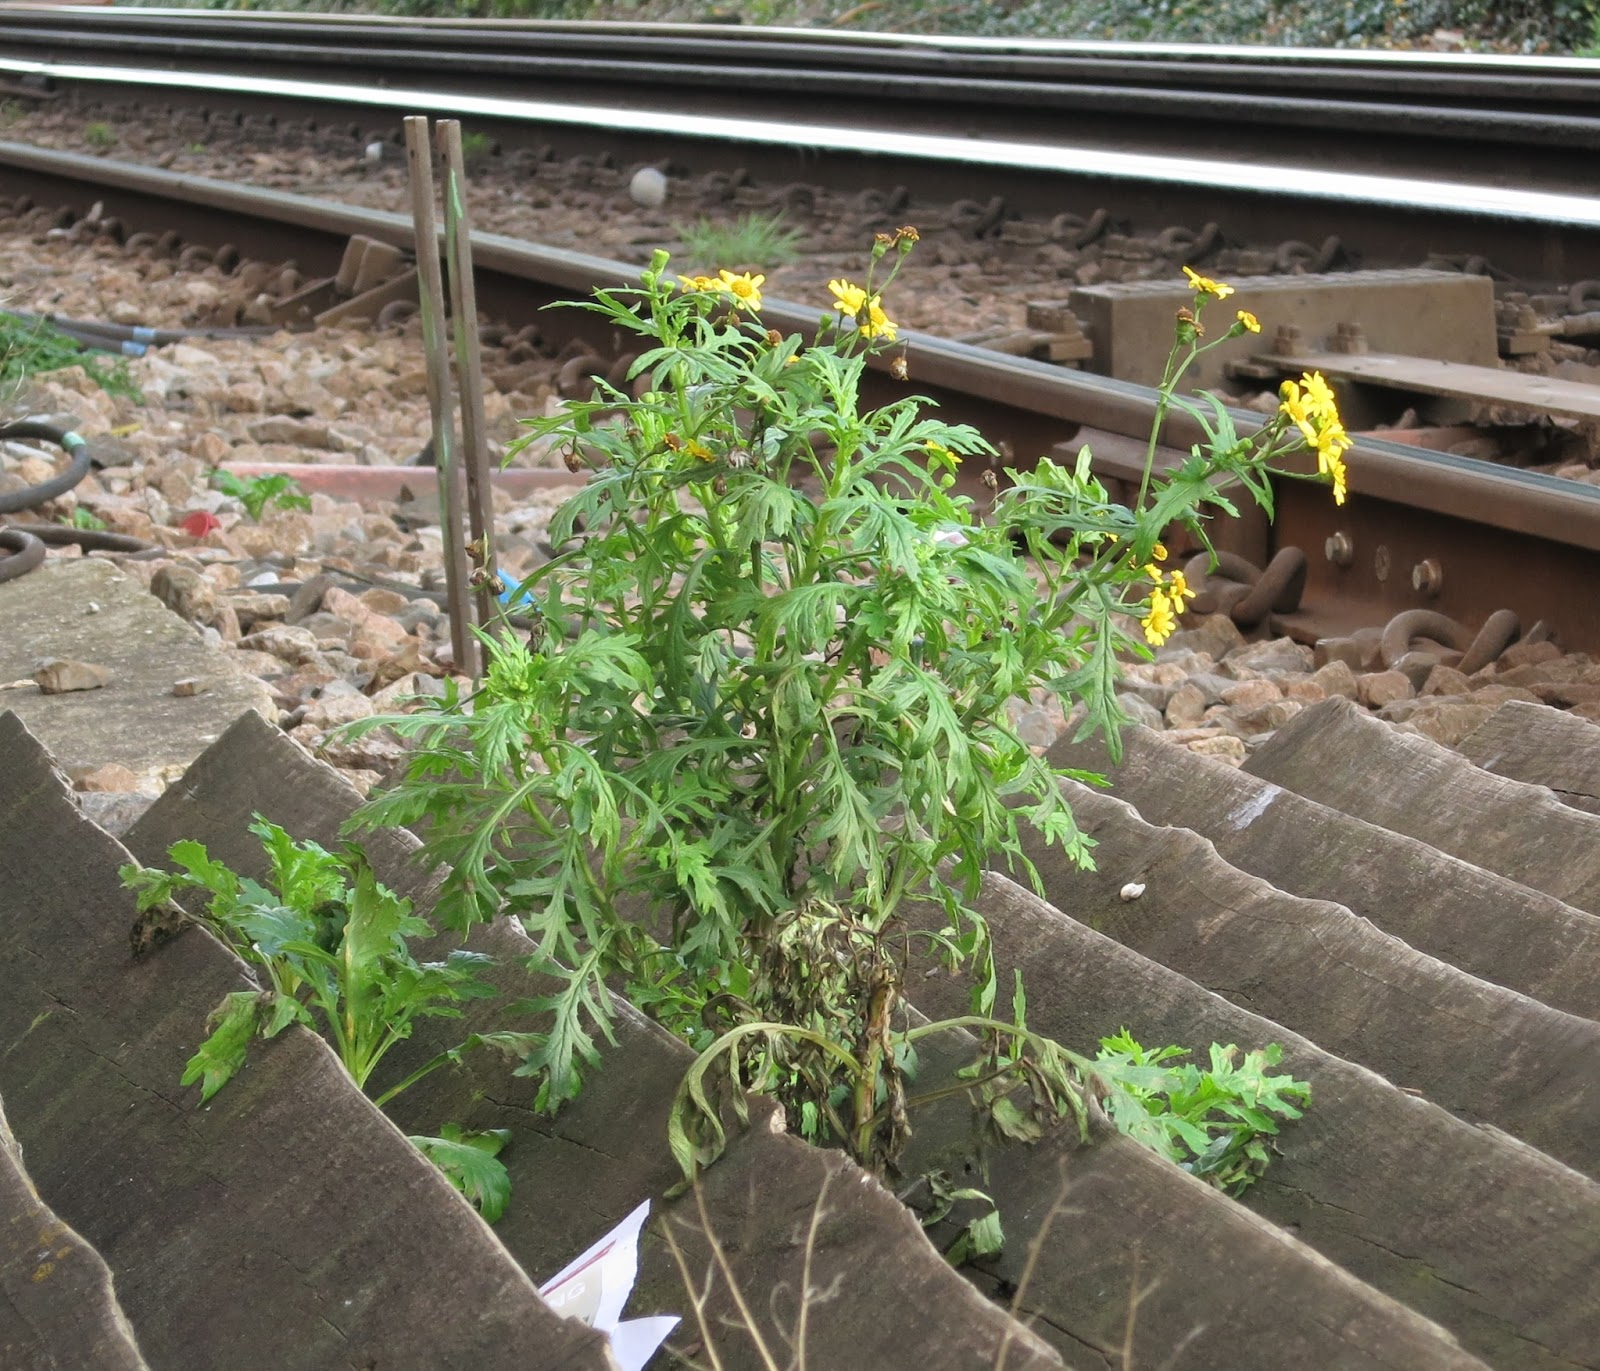 Oxford Ragwort plant in flower by railway tracks.